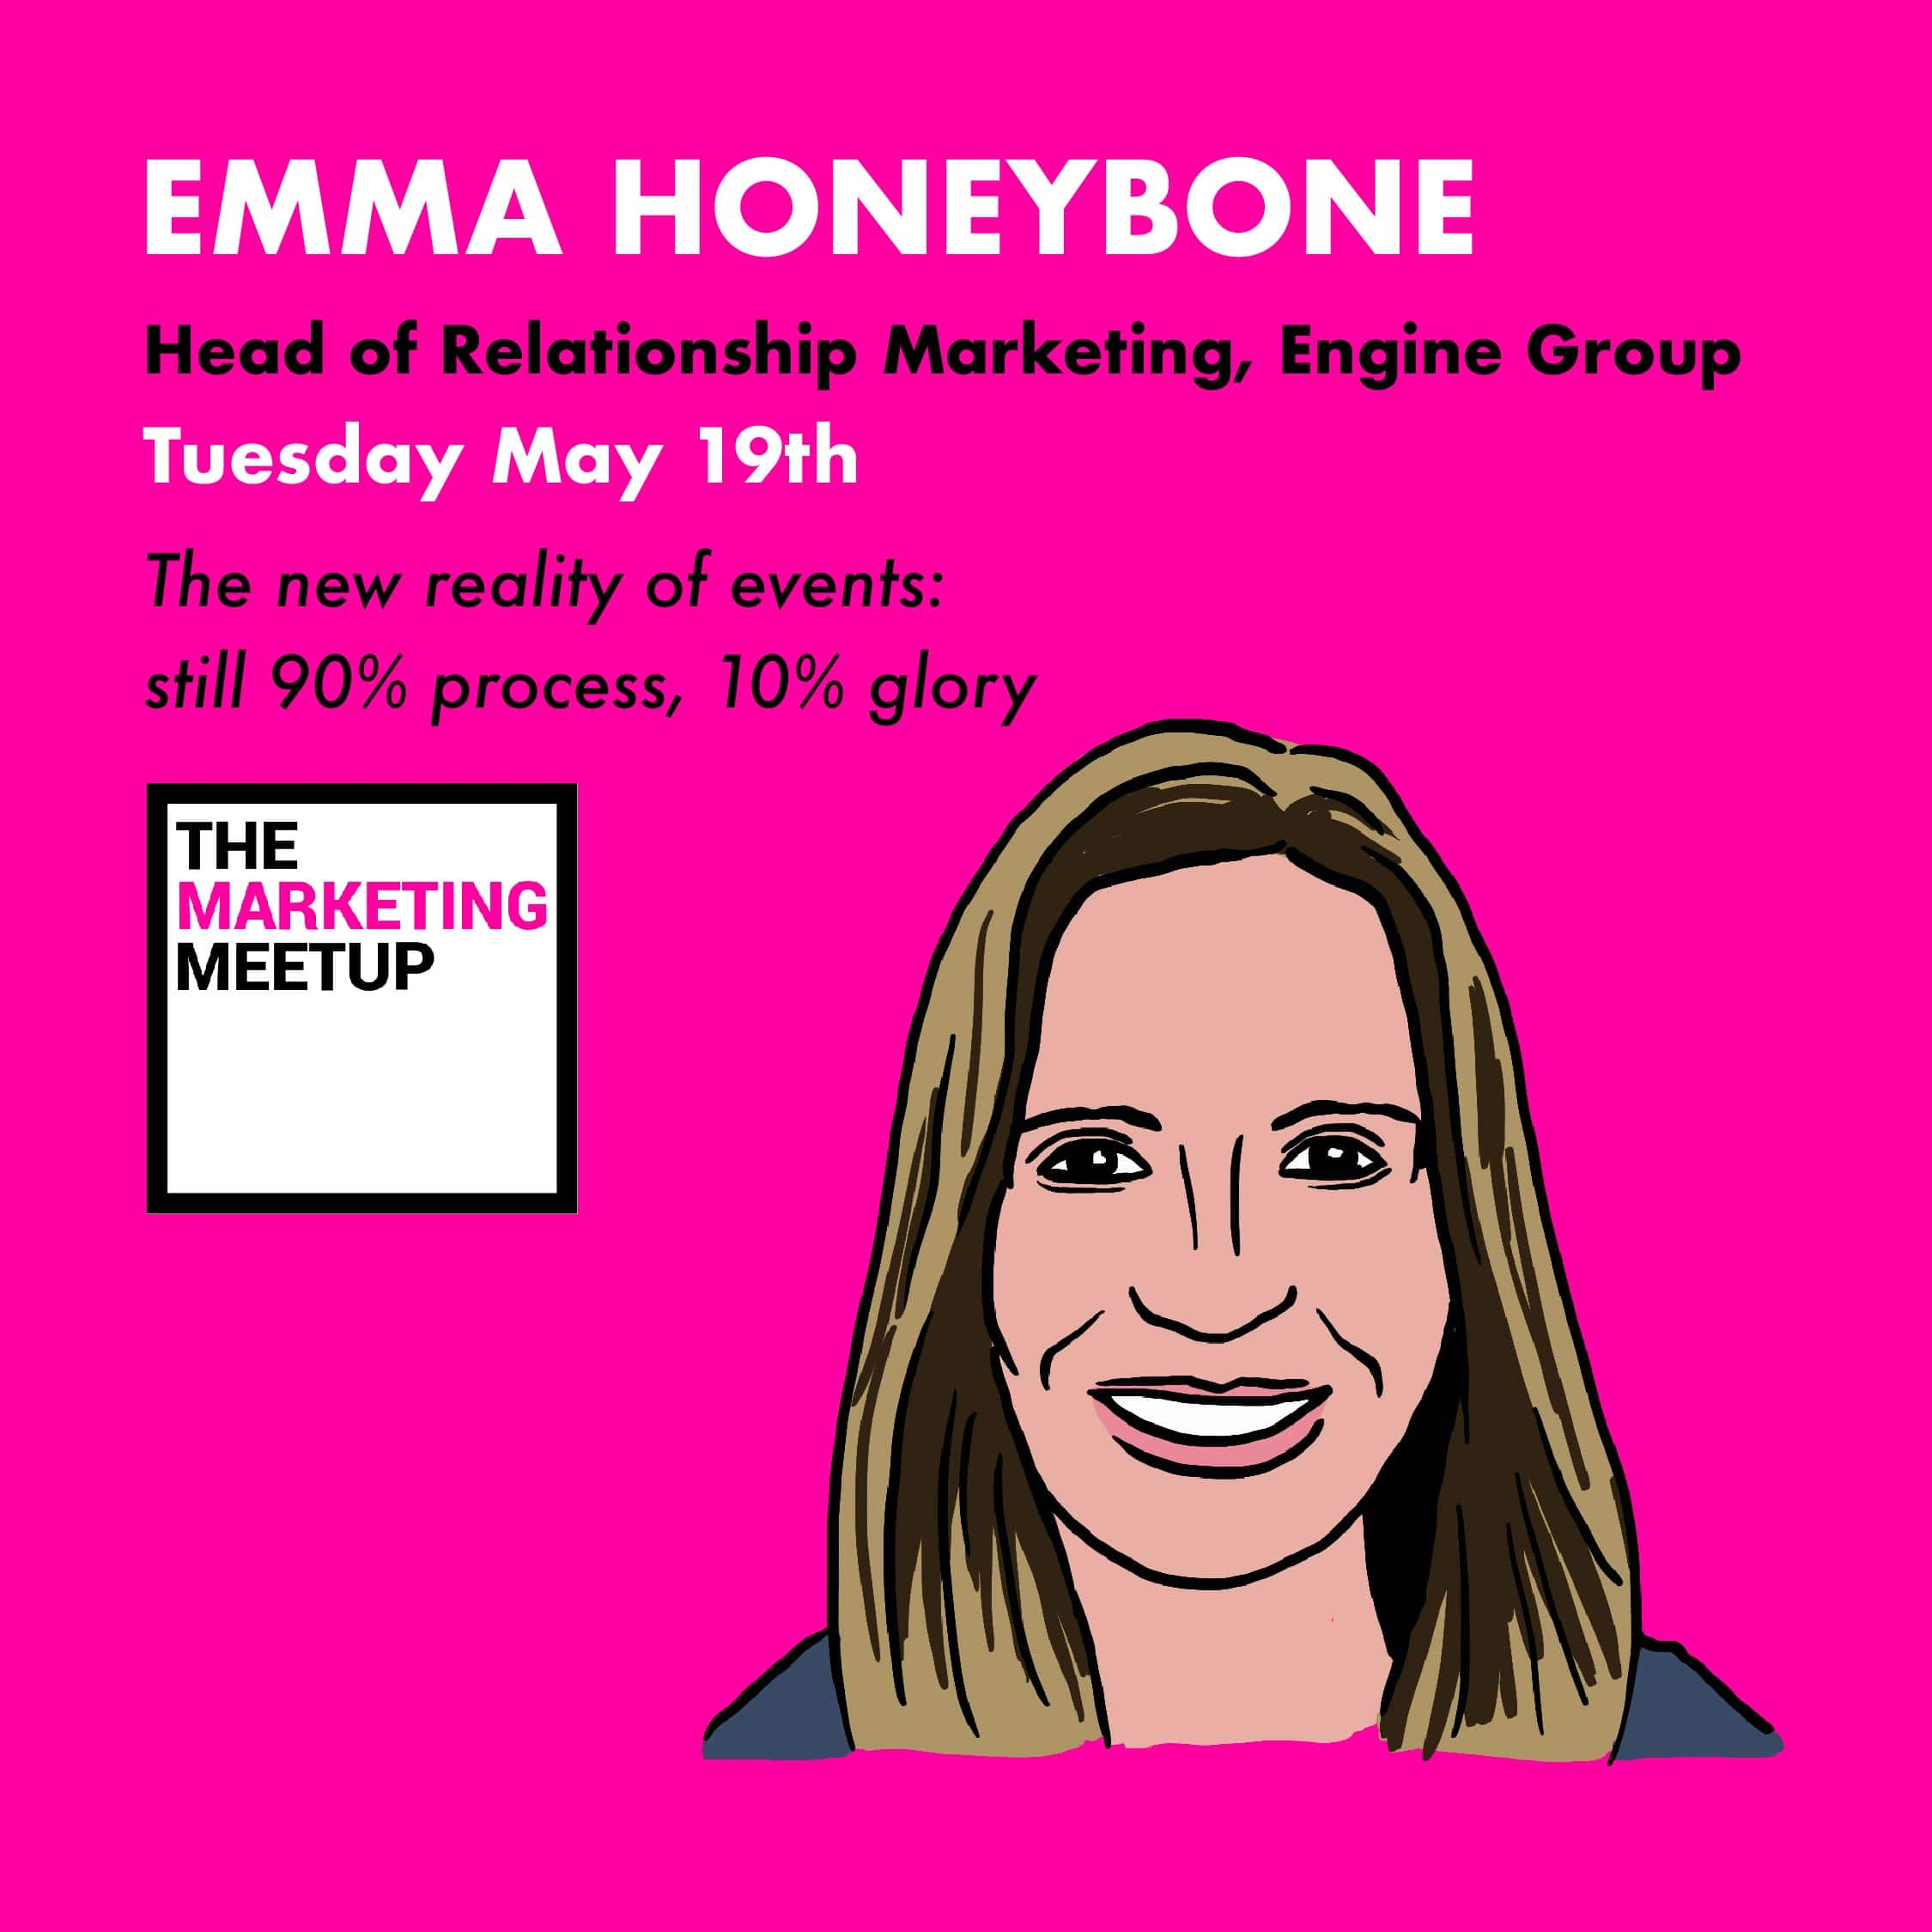 How have events changed in reaction to COVID, and how to nail them now – Emma Honeybone, Head of Relationship Marketing, Engine Group